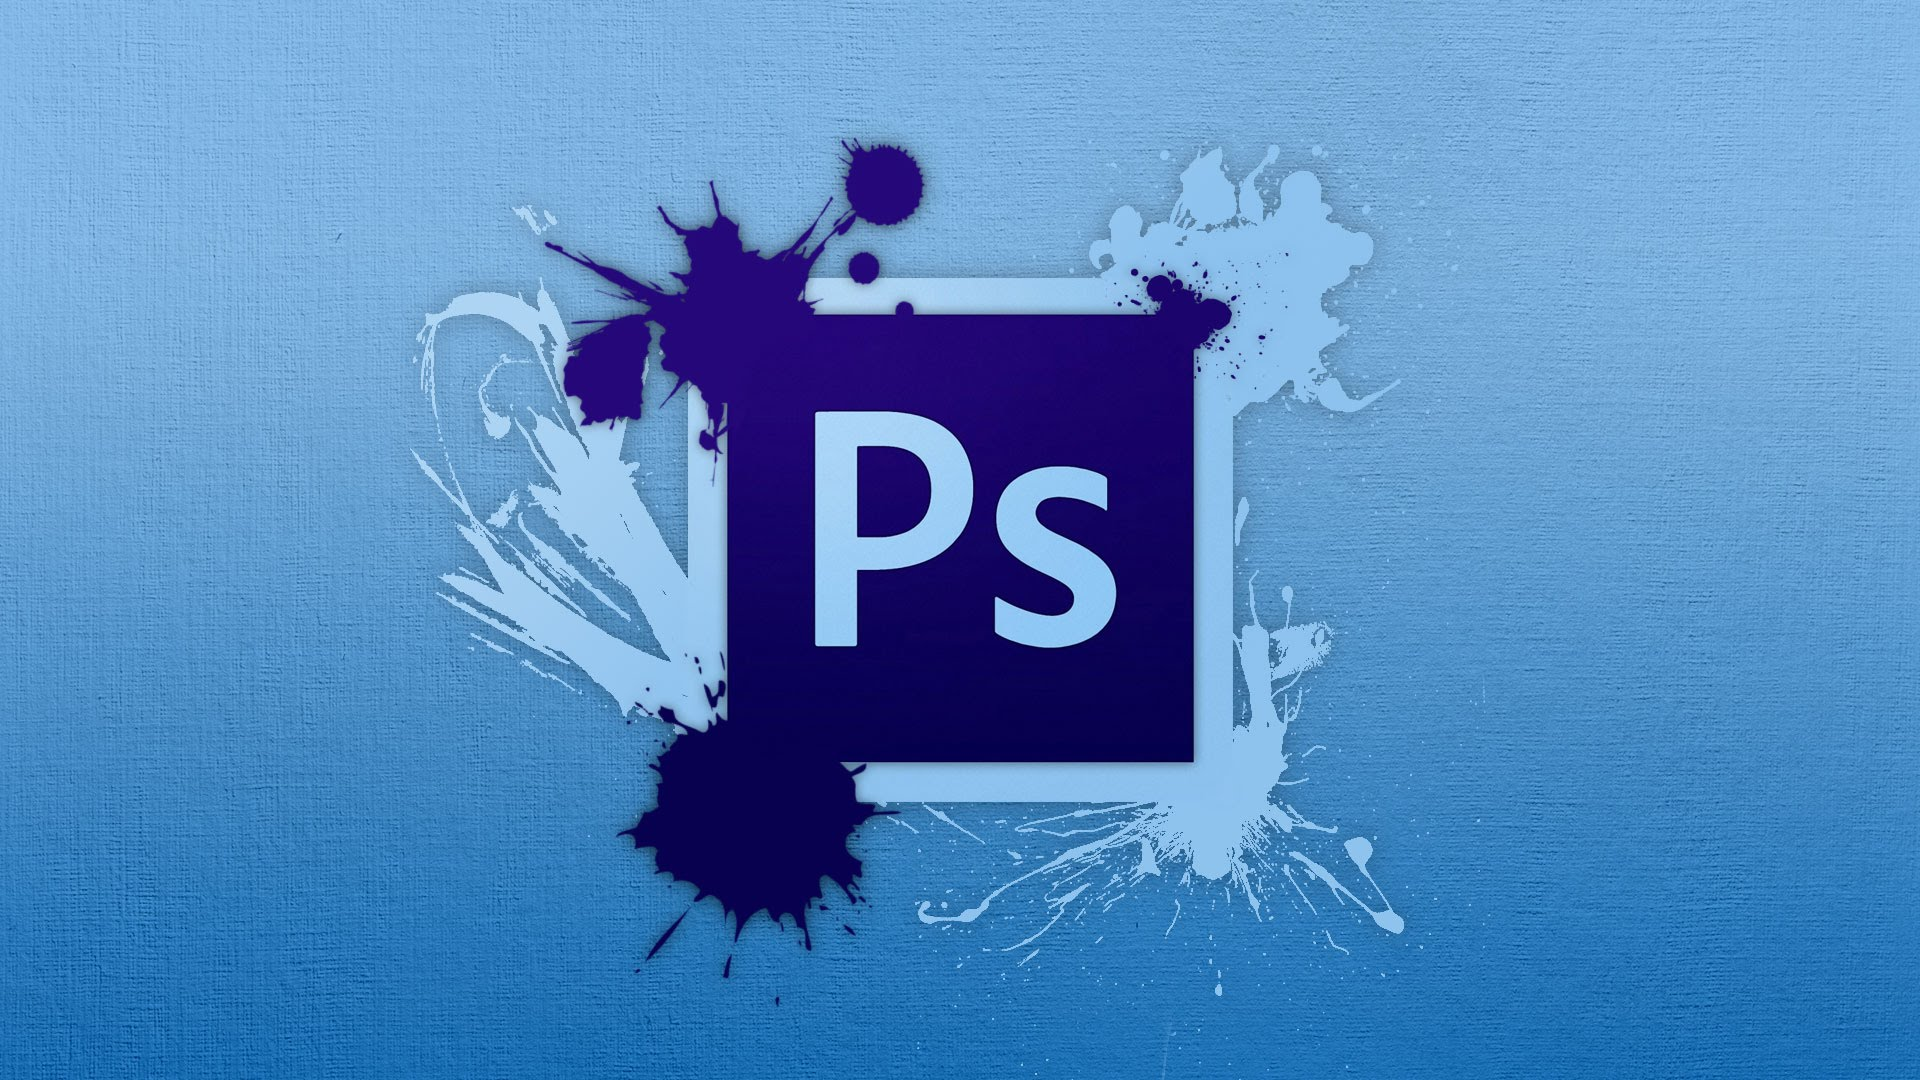 HQ Photoshop Wallpapers | File 384.1Kb